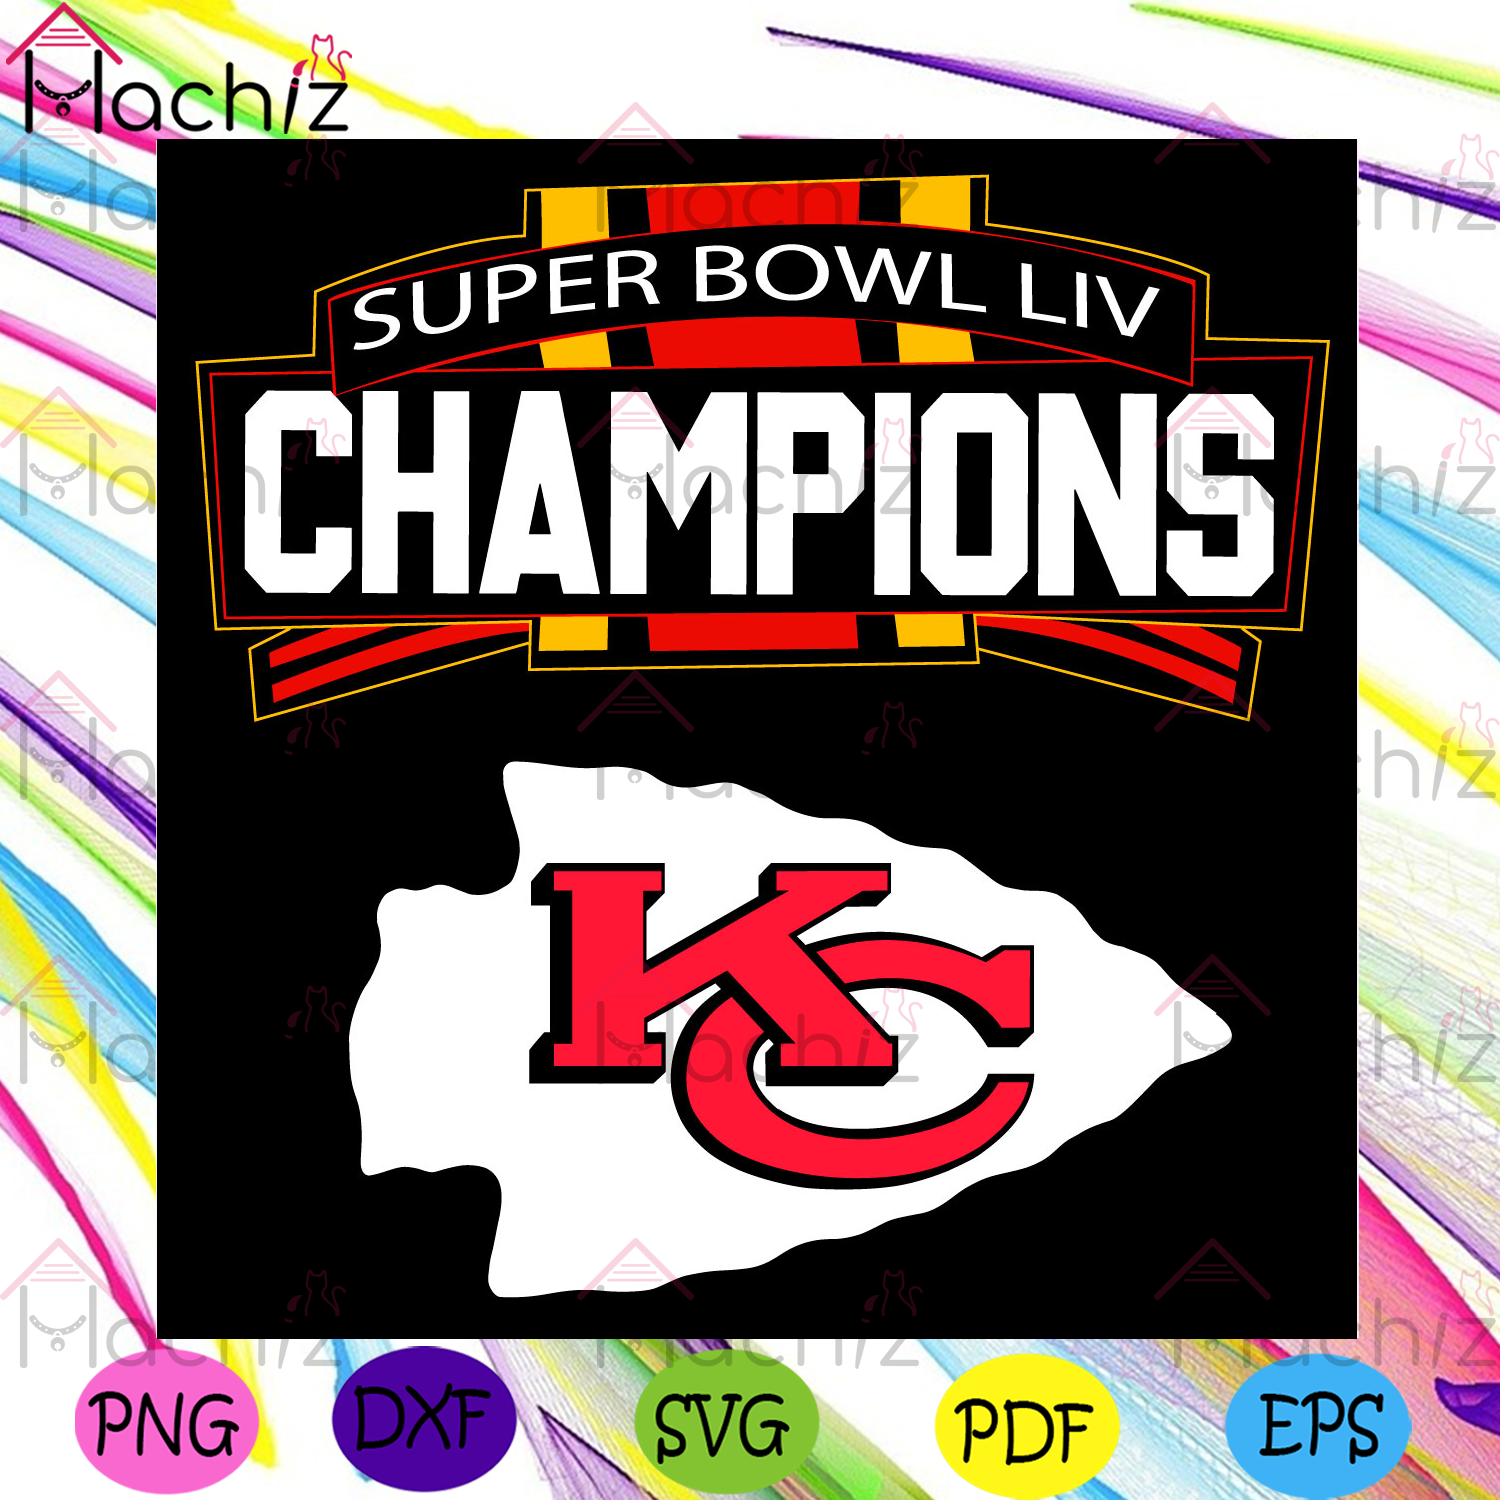 Super Bowl Champions Kansas City Chiefs Svg, Sport Svg, Super Bowl 2021 Svg, Kansas City Chiefs Svg, Kansas City Chiefs Logo Svg, KC Chiefs Lovers Svg, Chiefs Fan Svg, Chiefs Helmets Svg, Champions Svg, Chiefs Gifts Svg, NFL Svg